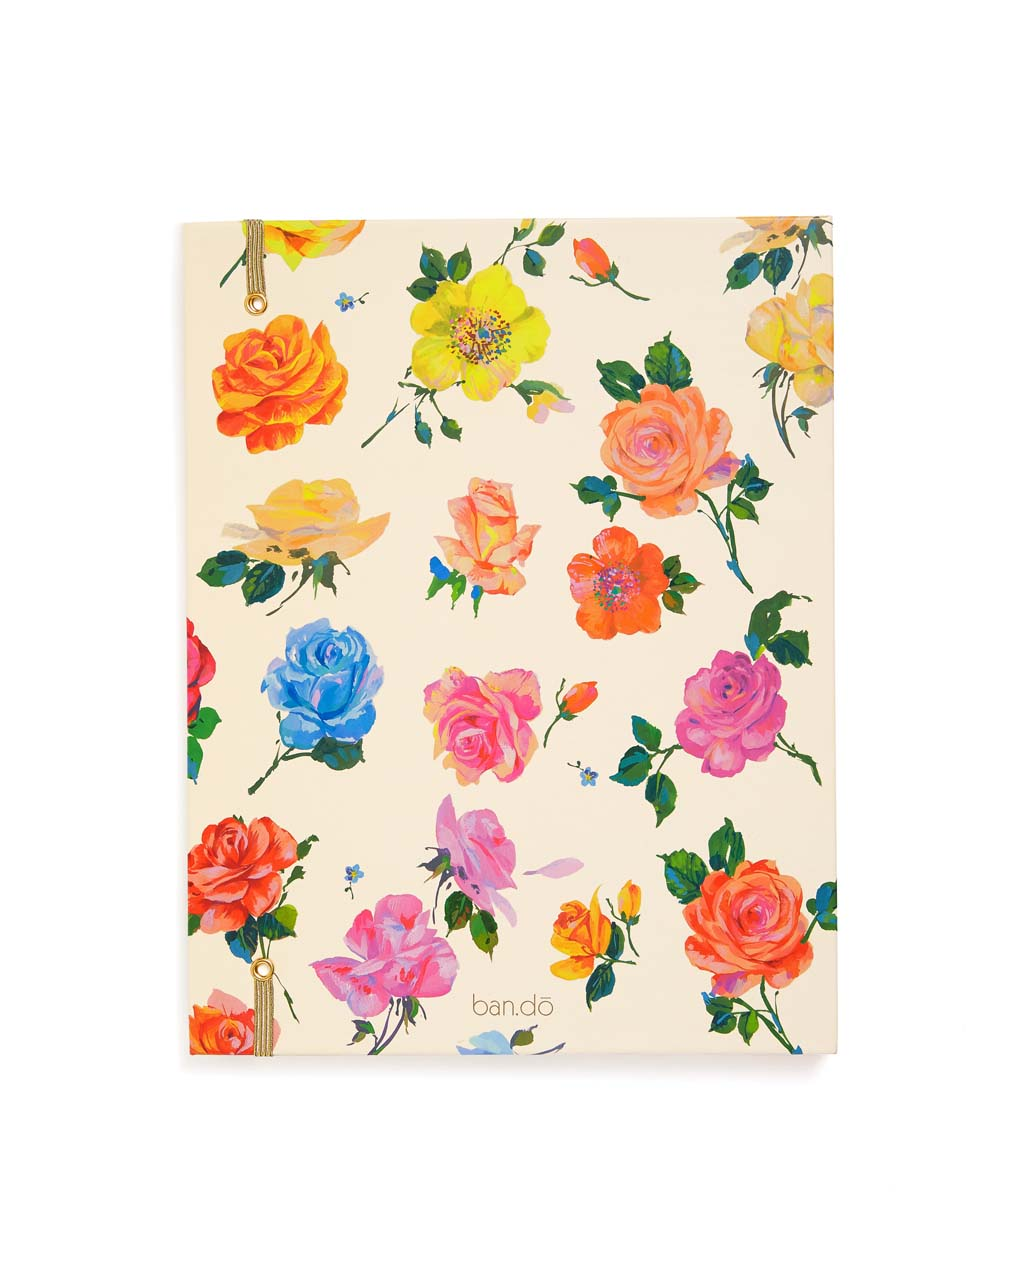 Back view of floral file folder cover